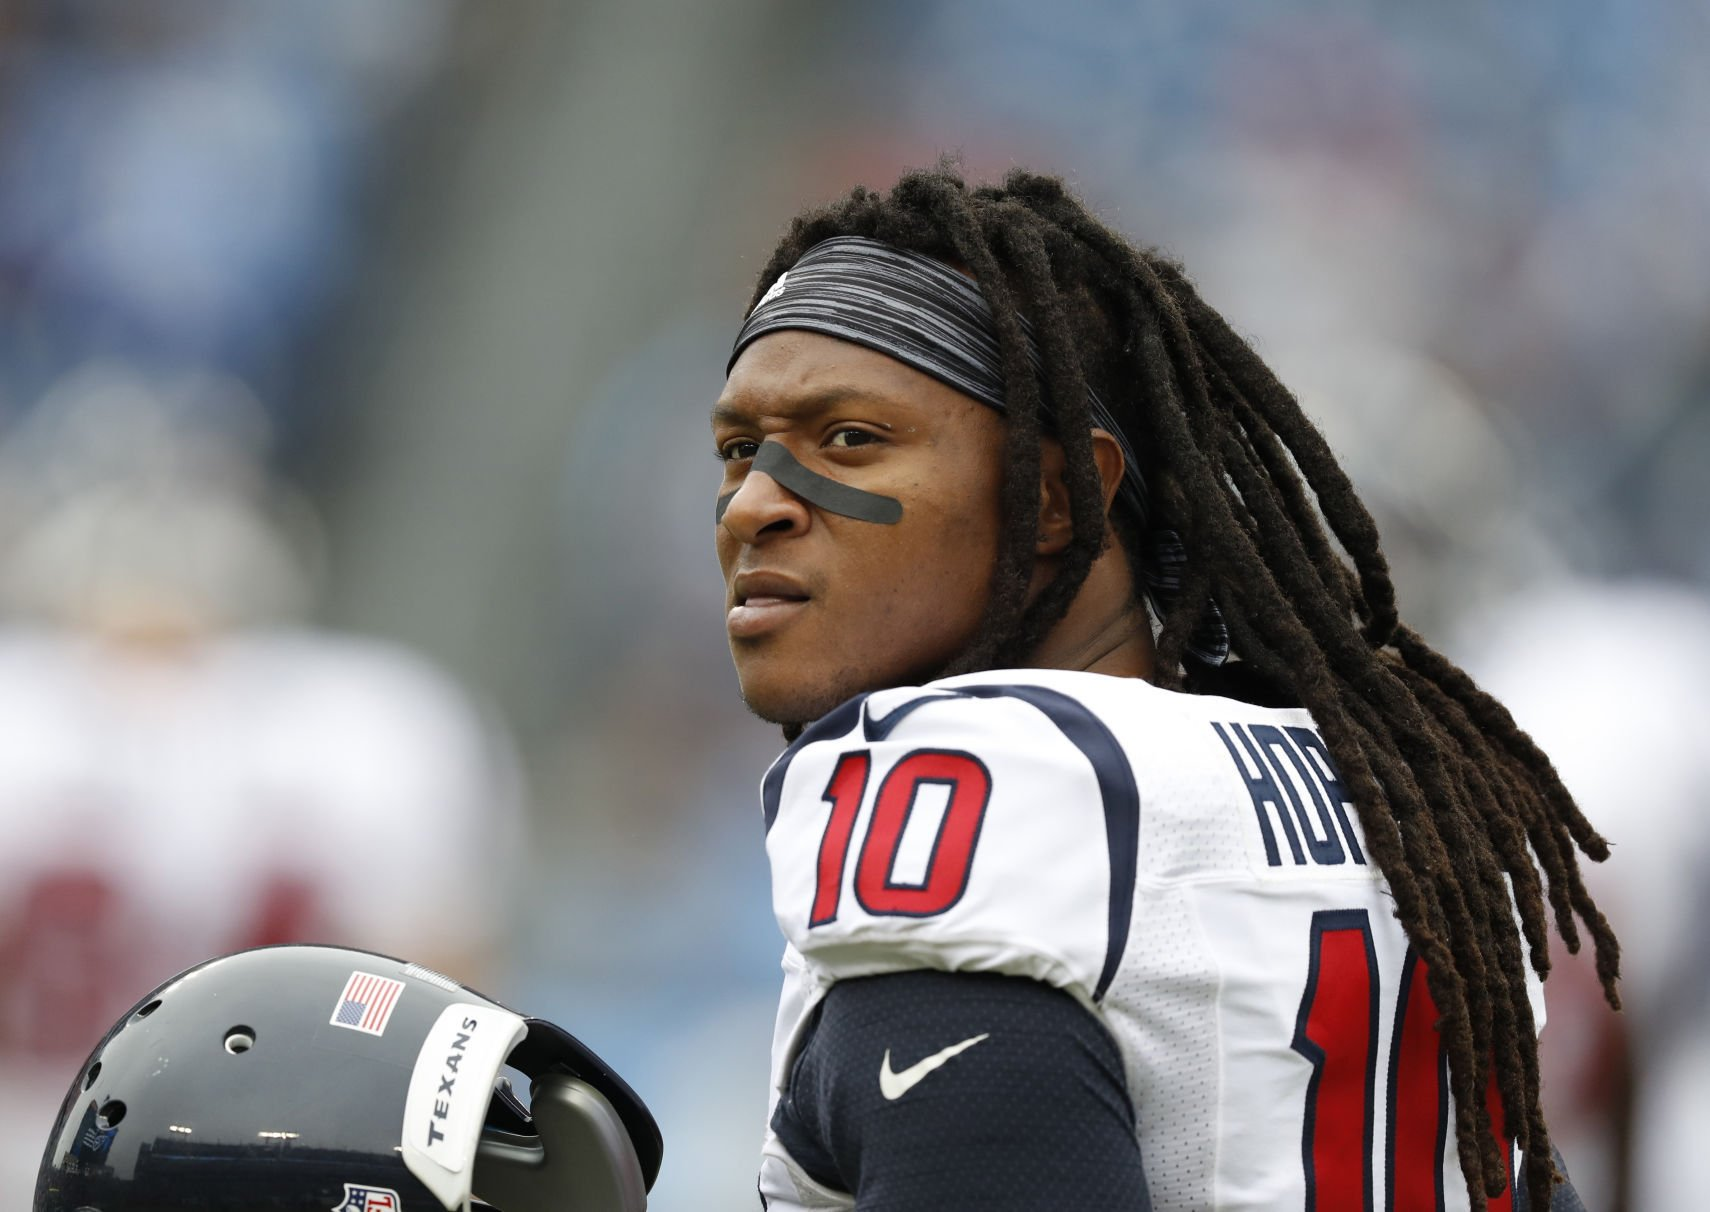 Texans reportedly sign DeAndre Hopkins to record five-year extension